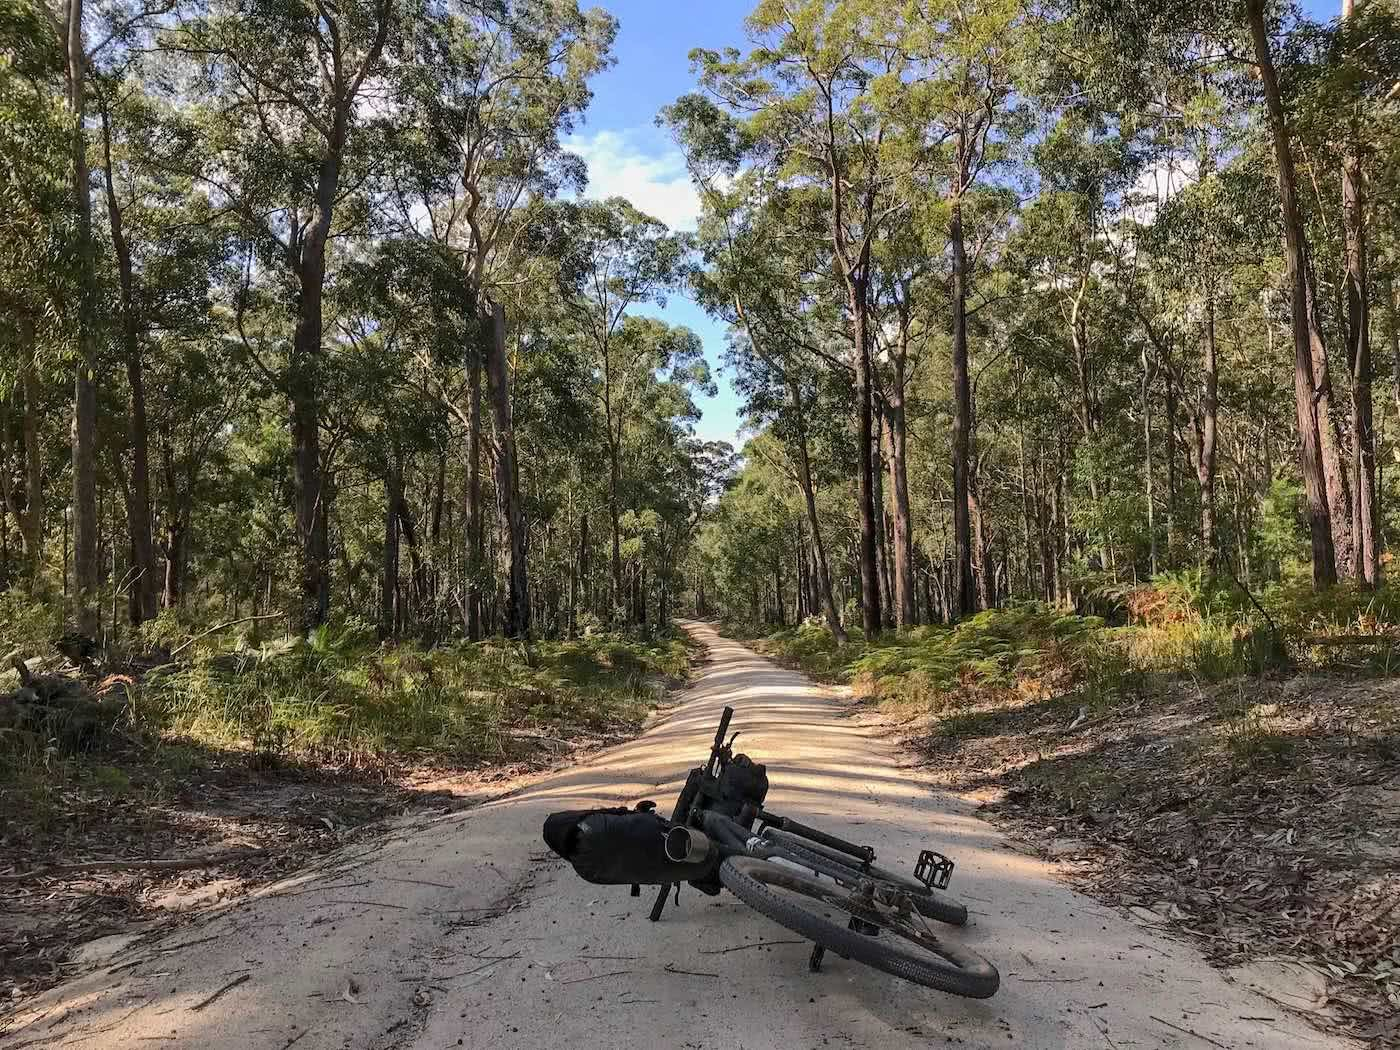 5 Reasons For An Overnight Adventure Mattie Gould bikepacking canberra, fire trails, mogo forest